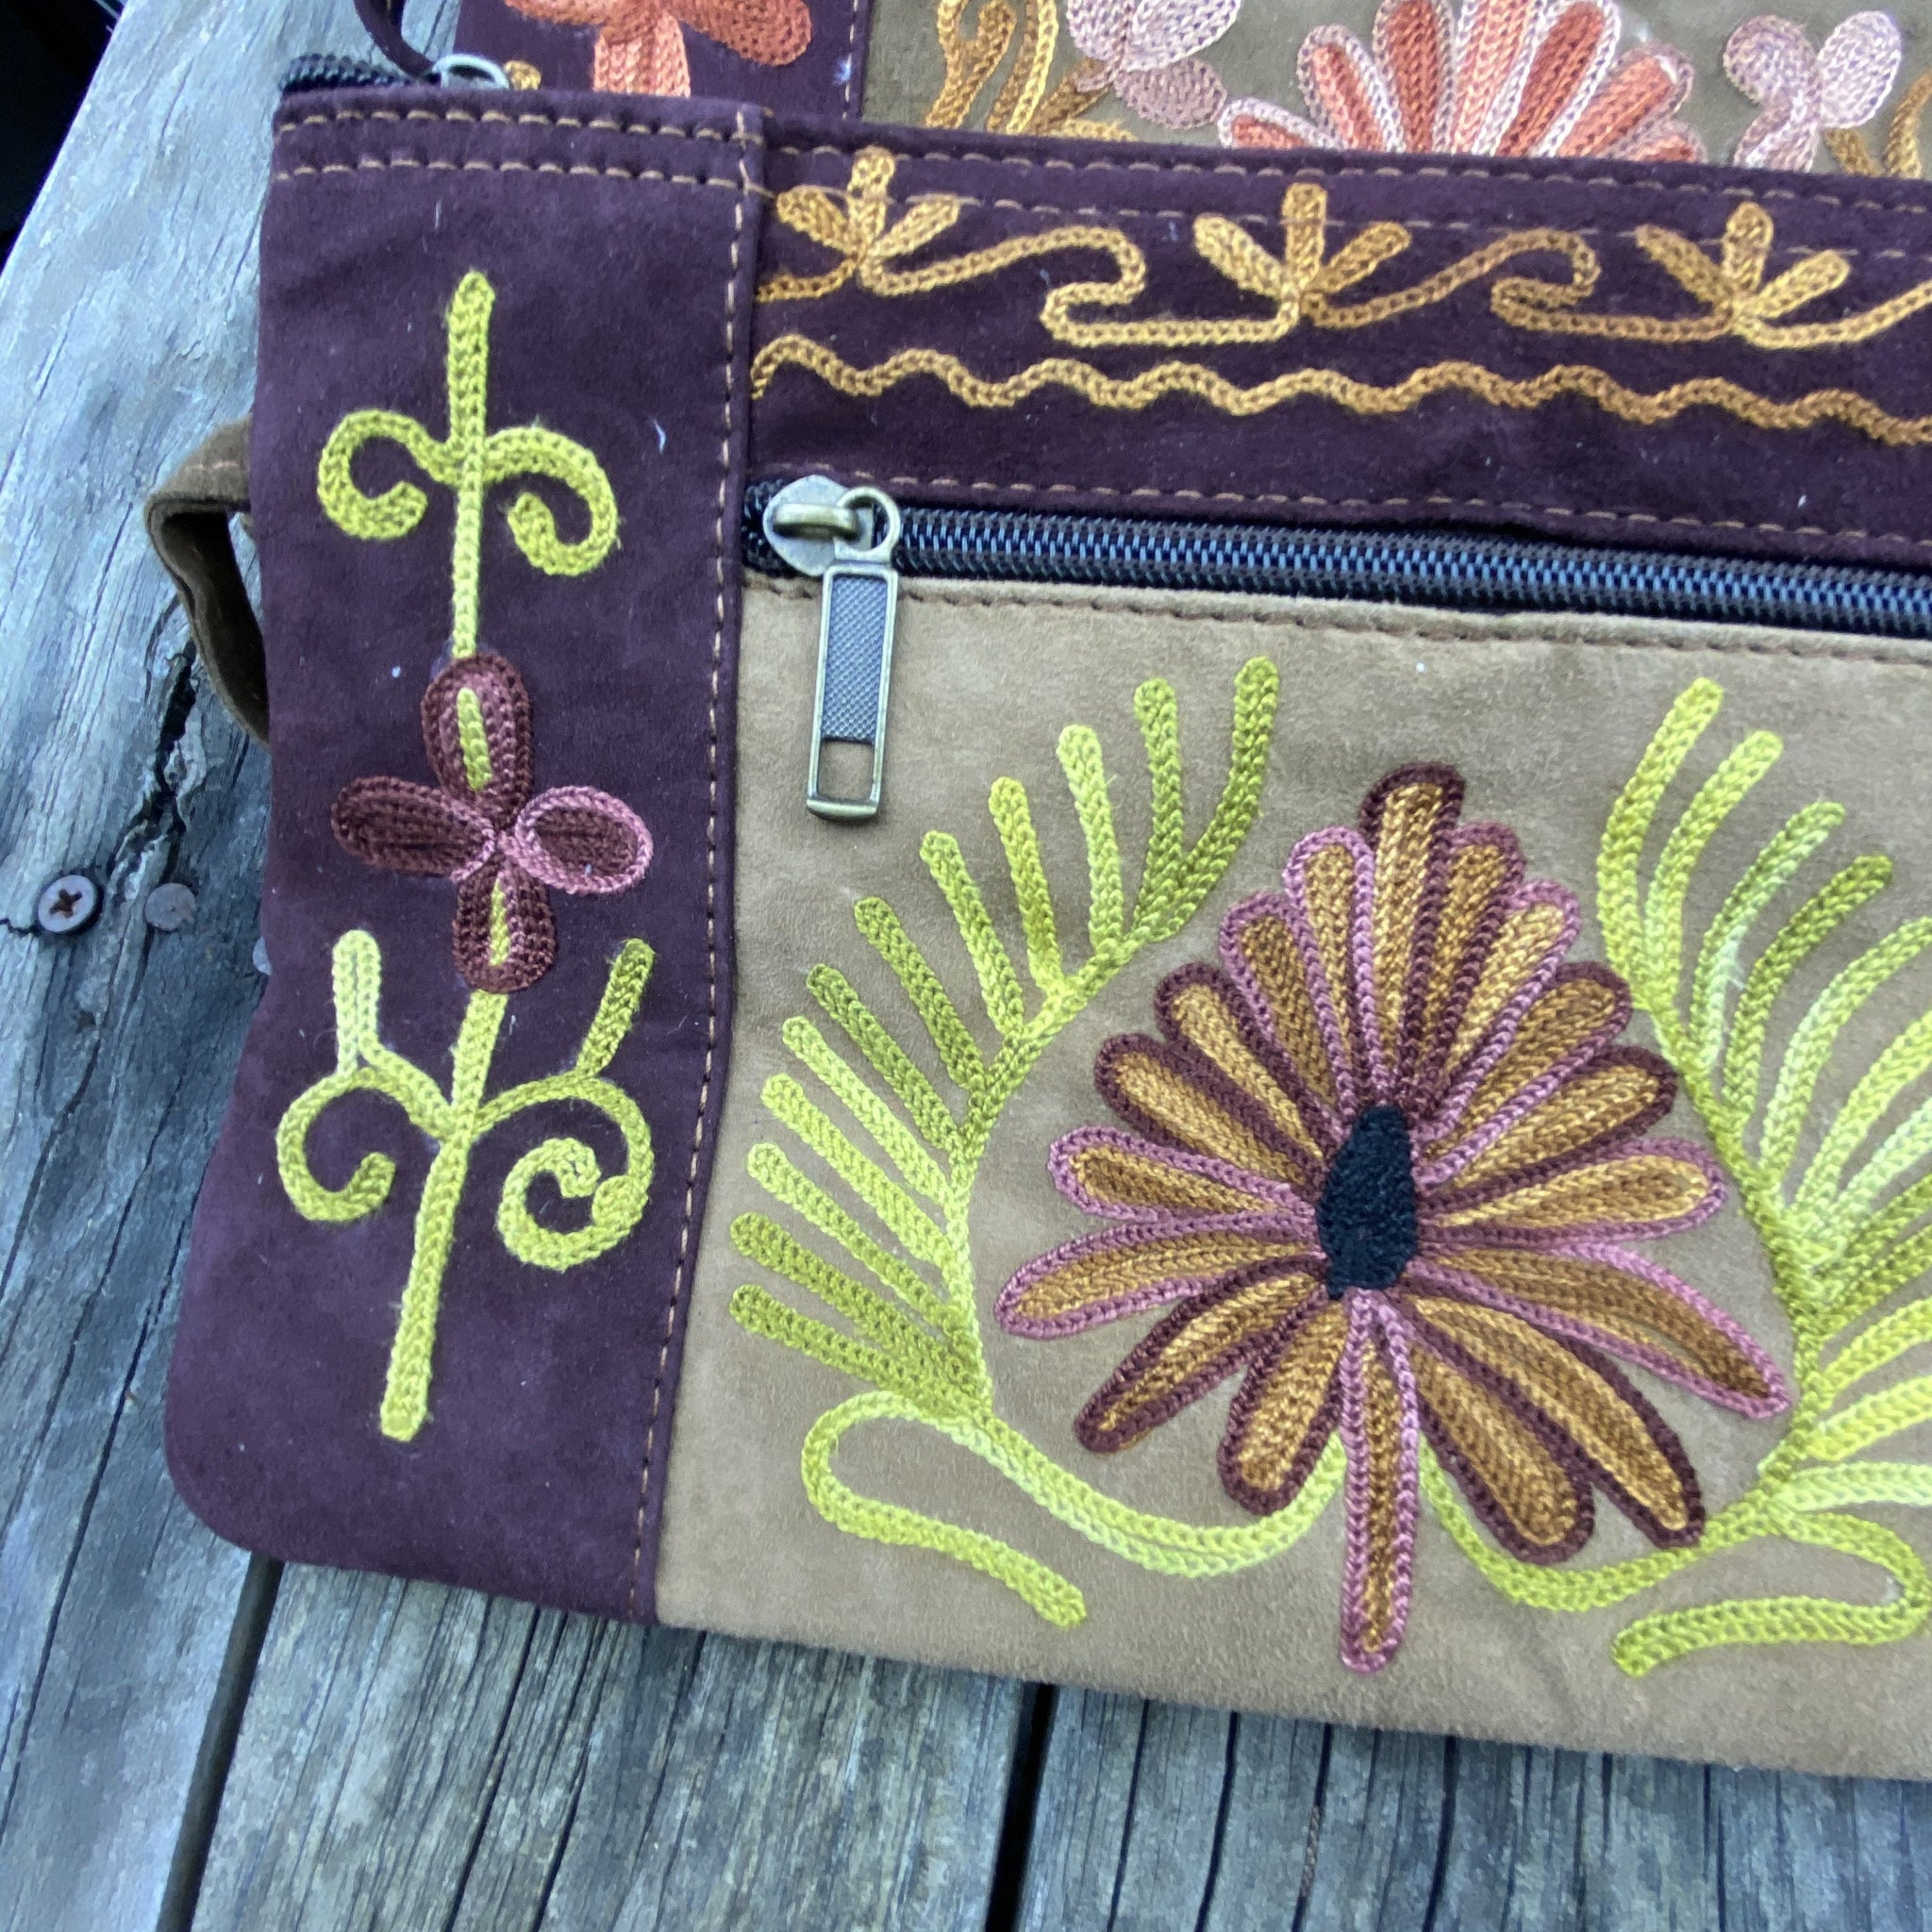 Fair Trade Ethical  Embroidered Suede Clutch Purse Maroon-Assorted